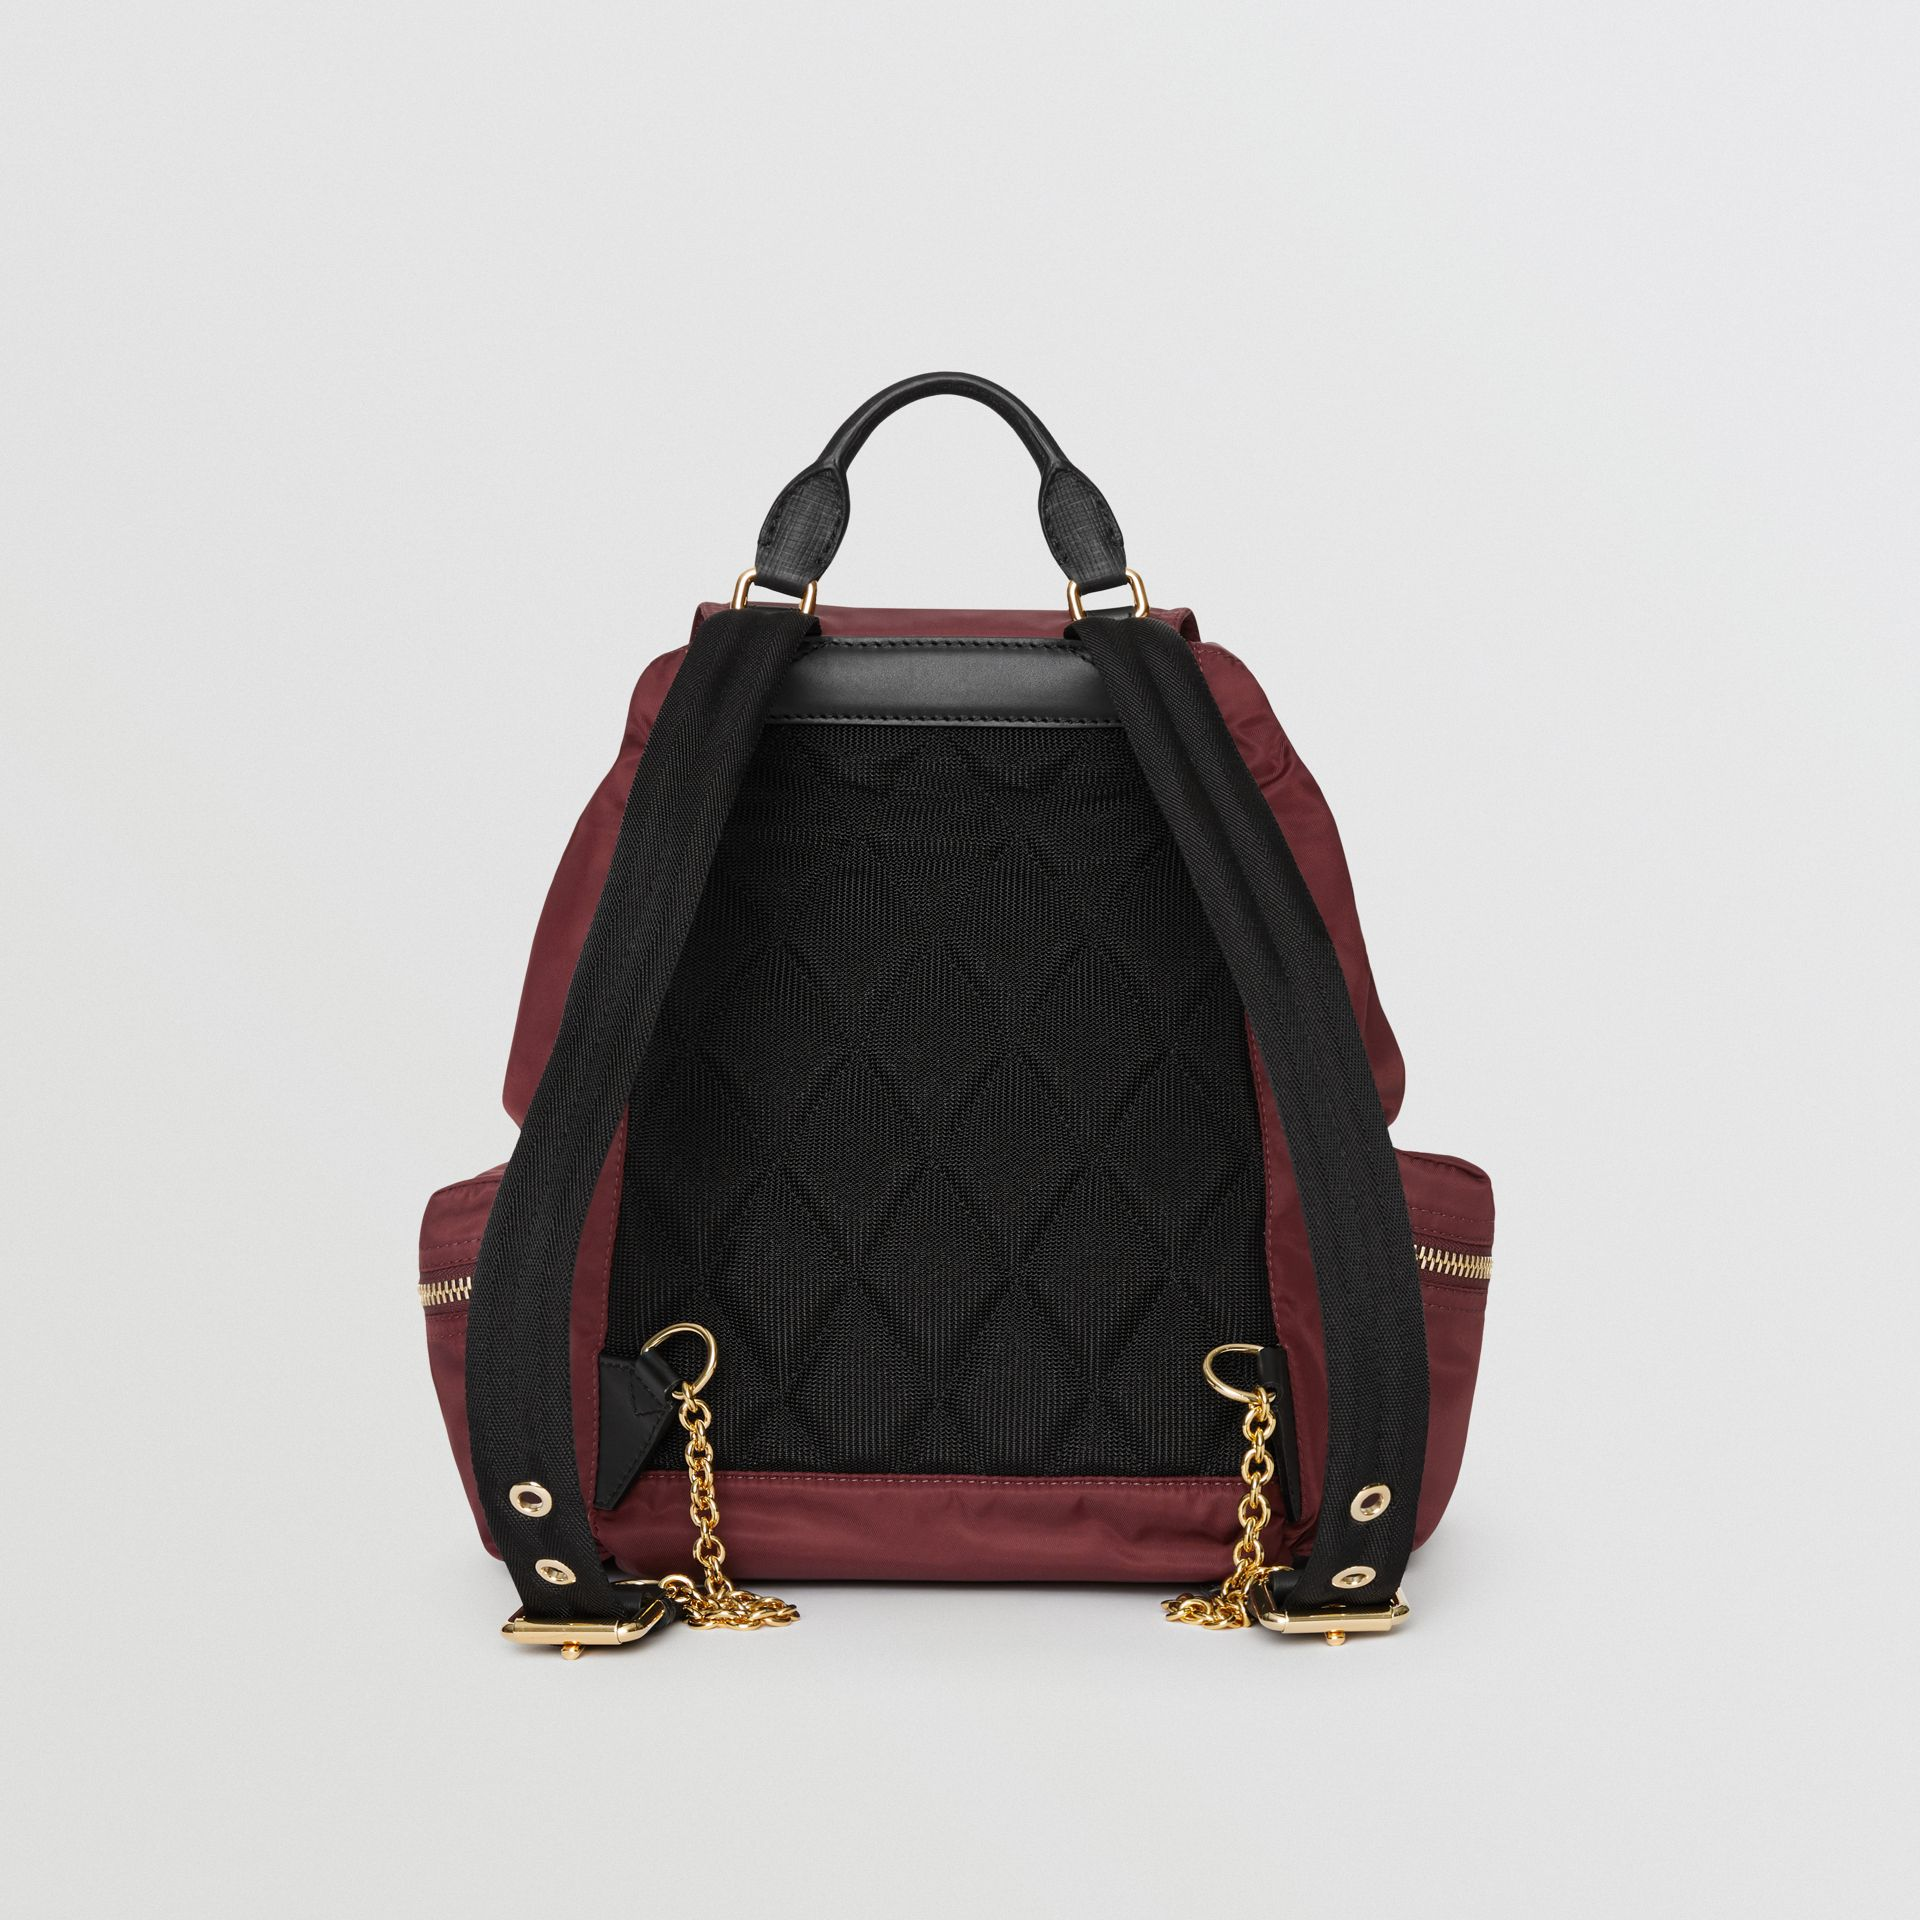 Sac The Rucksack moyen en nylon technique et cuir (Rouge Bourgogne) - Femme | Burberry Canada - photo de la galerie 6